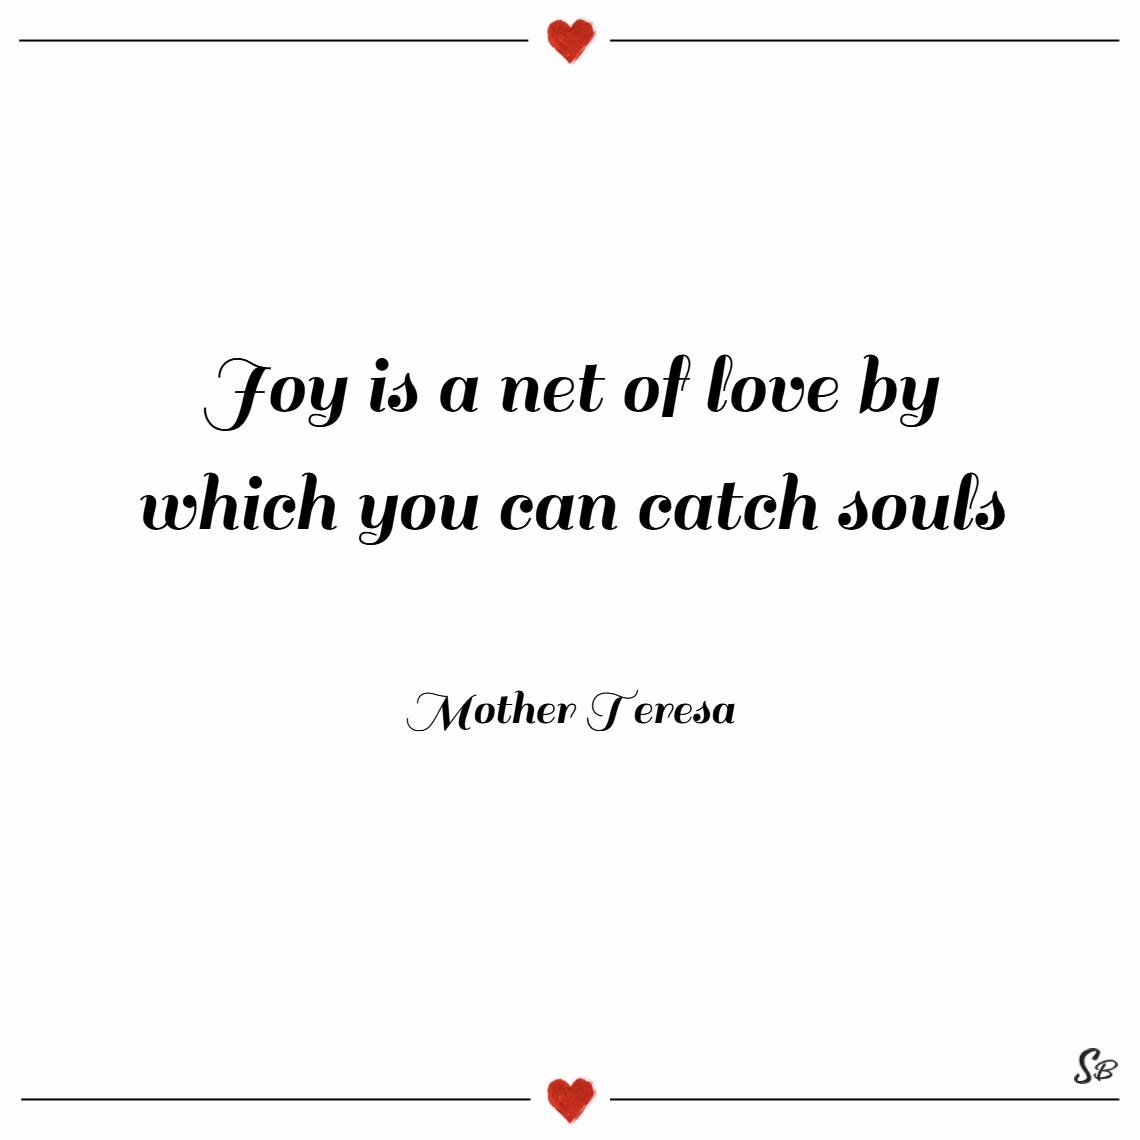 Joy is a net of love by which you can catch souls. – mother teresa